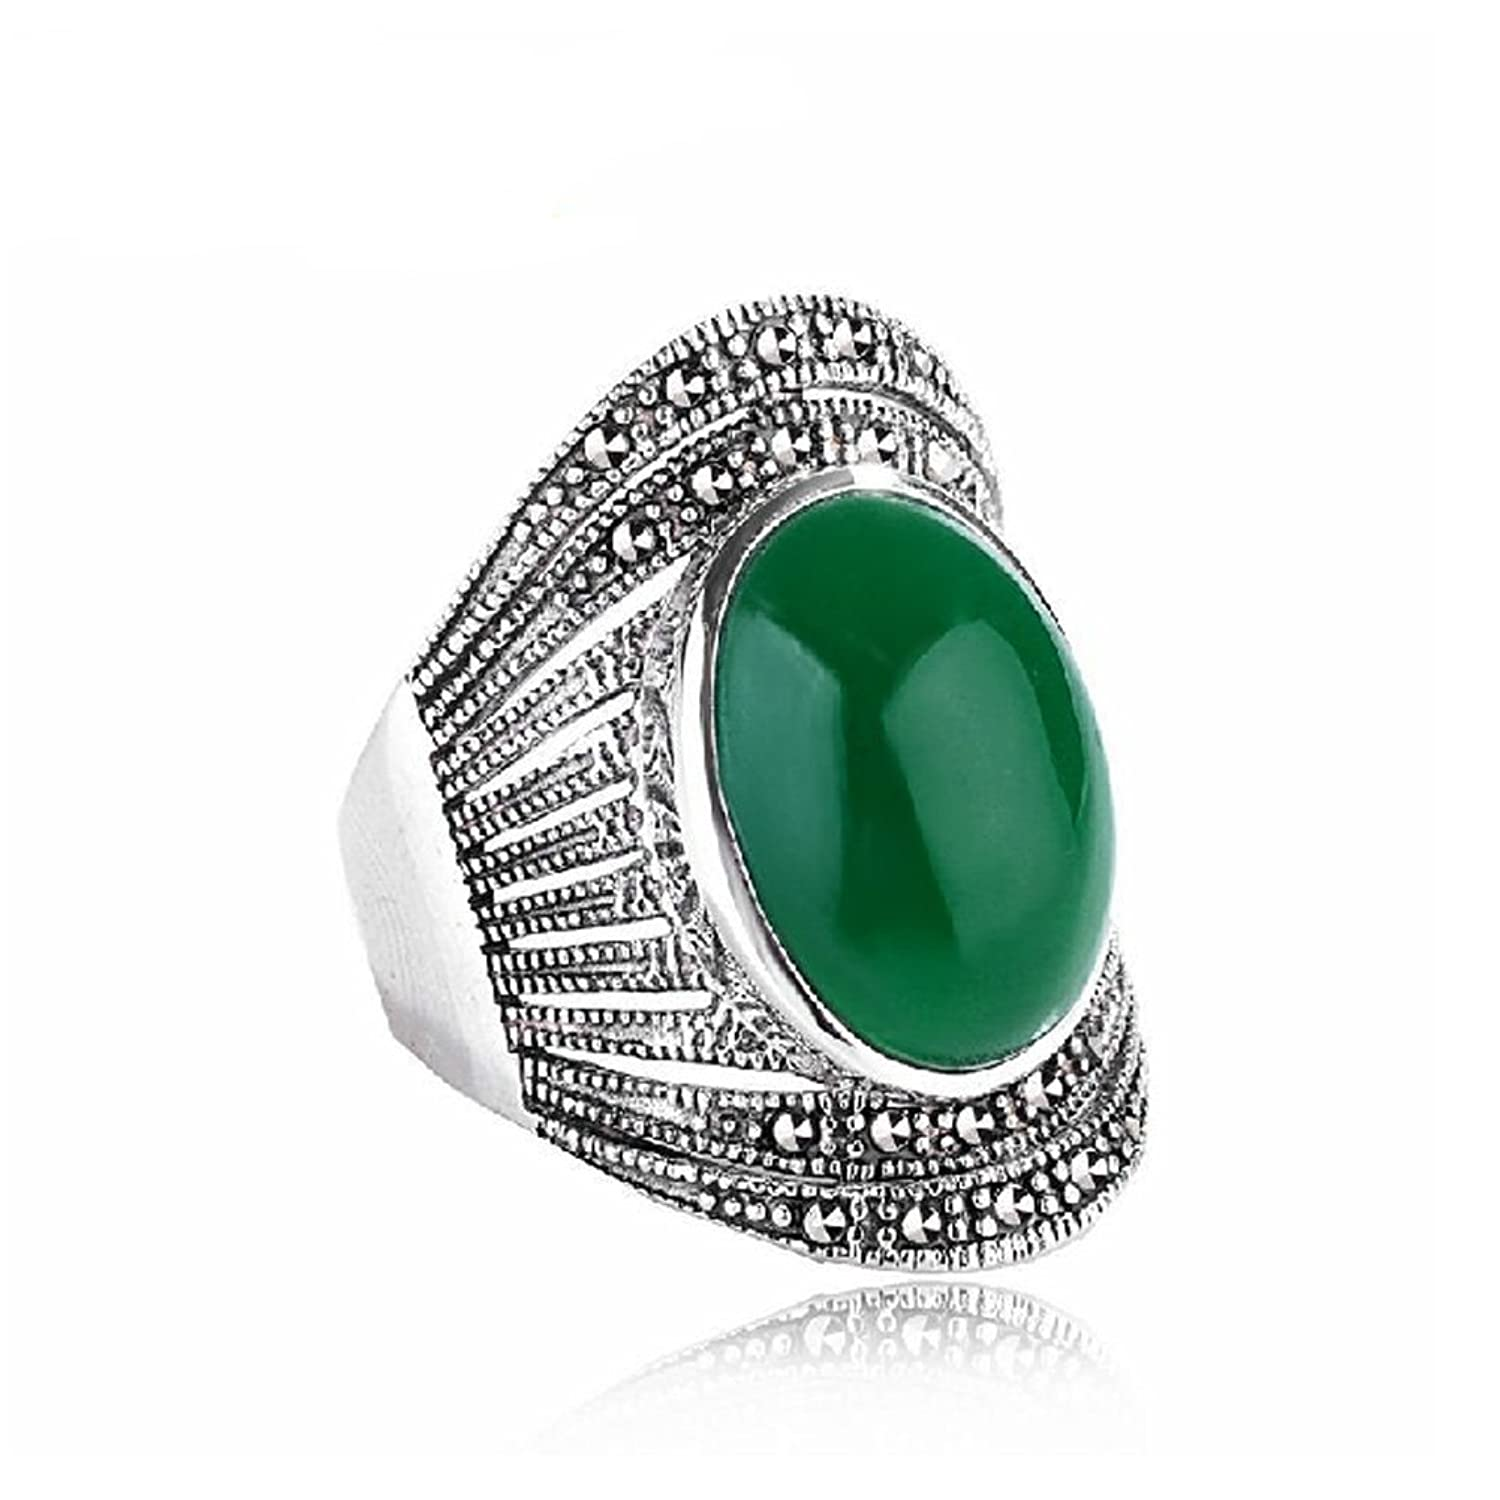 Jade Angel Thailand 925 Silver Ring with Green Cubic Zirconia Marcasite